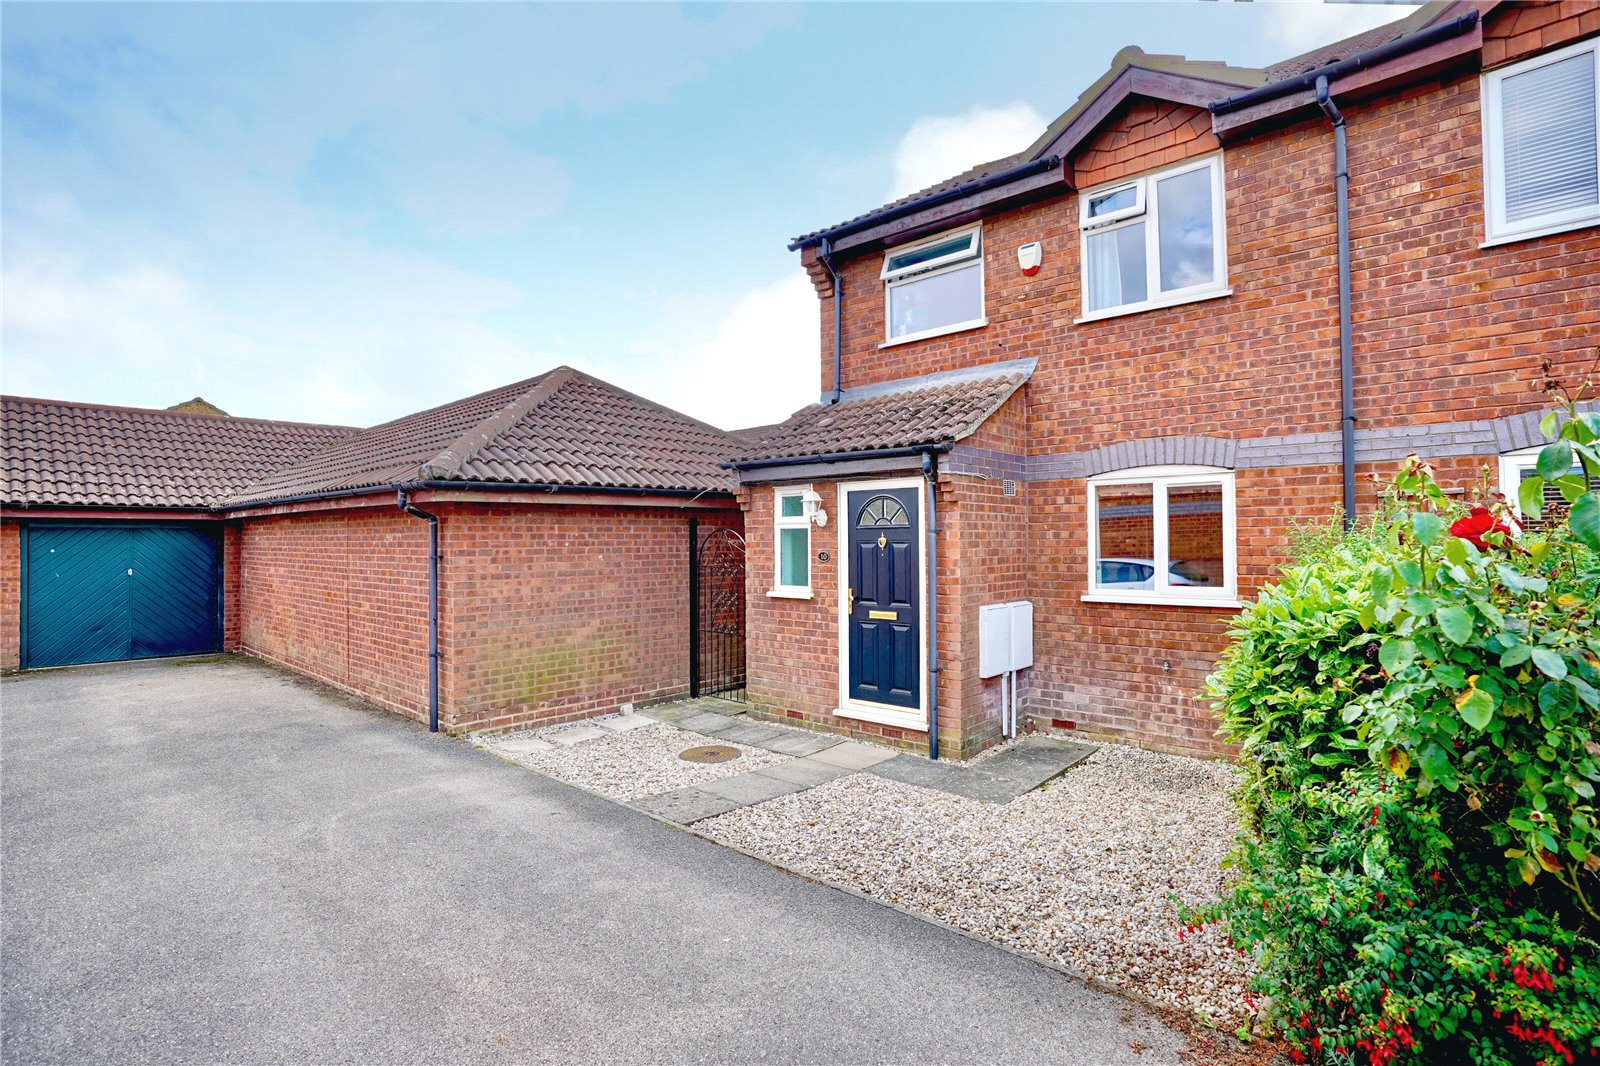 3 bed house for sale in Carisbrooke Way, Eynesbury, PE19